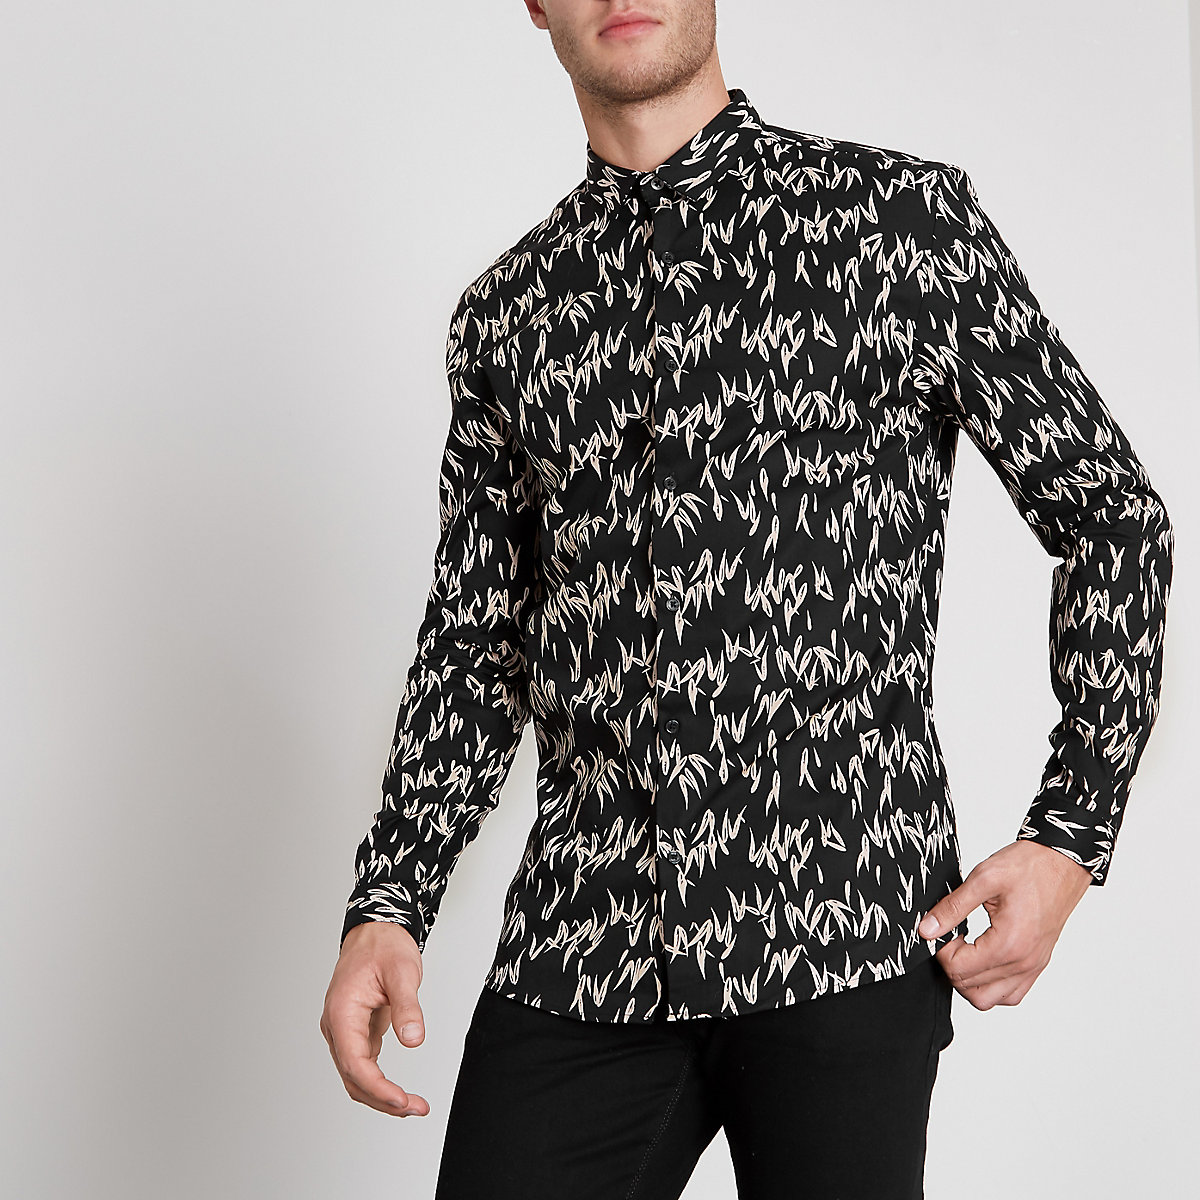 Black droplet print muscle fit shirt